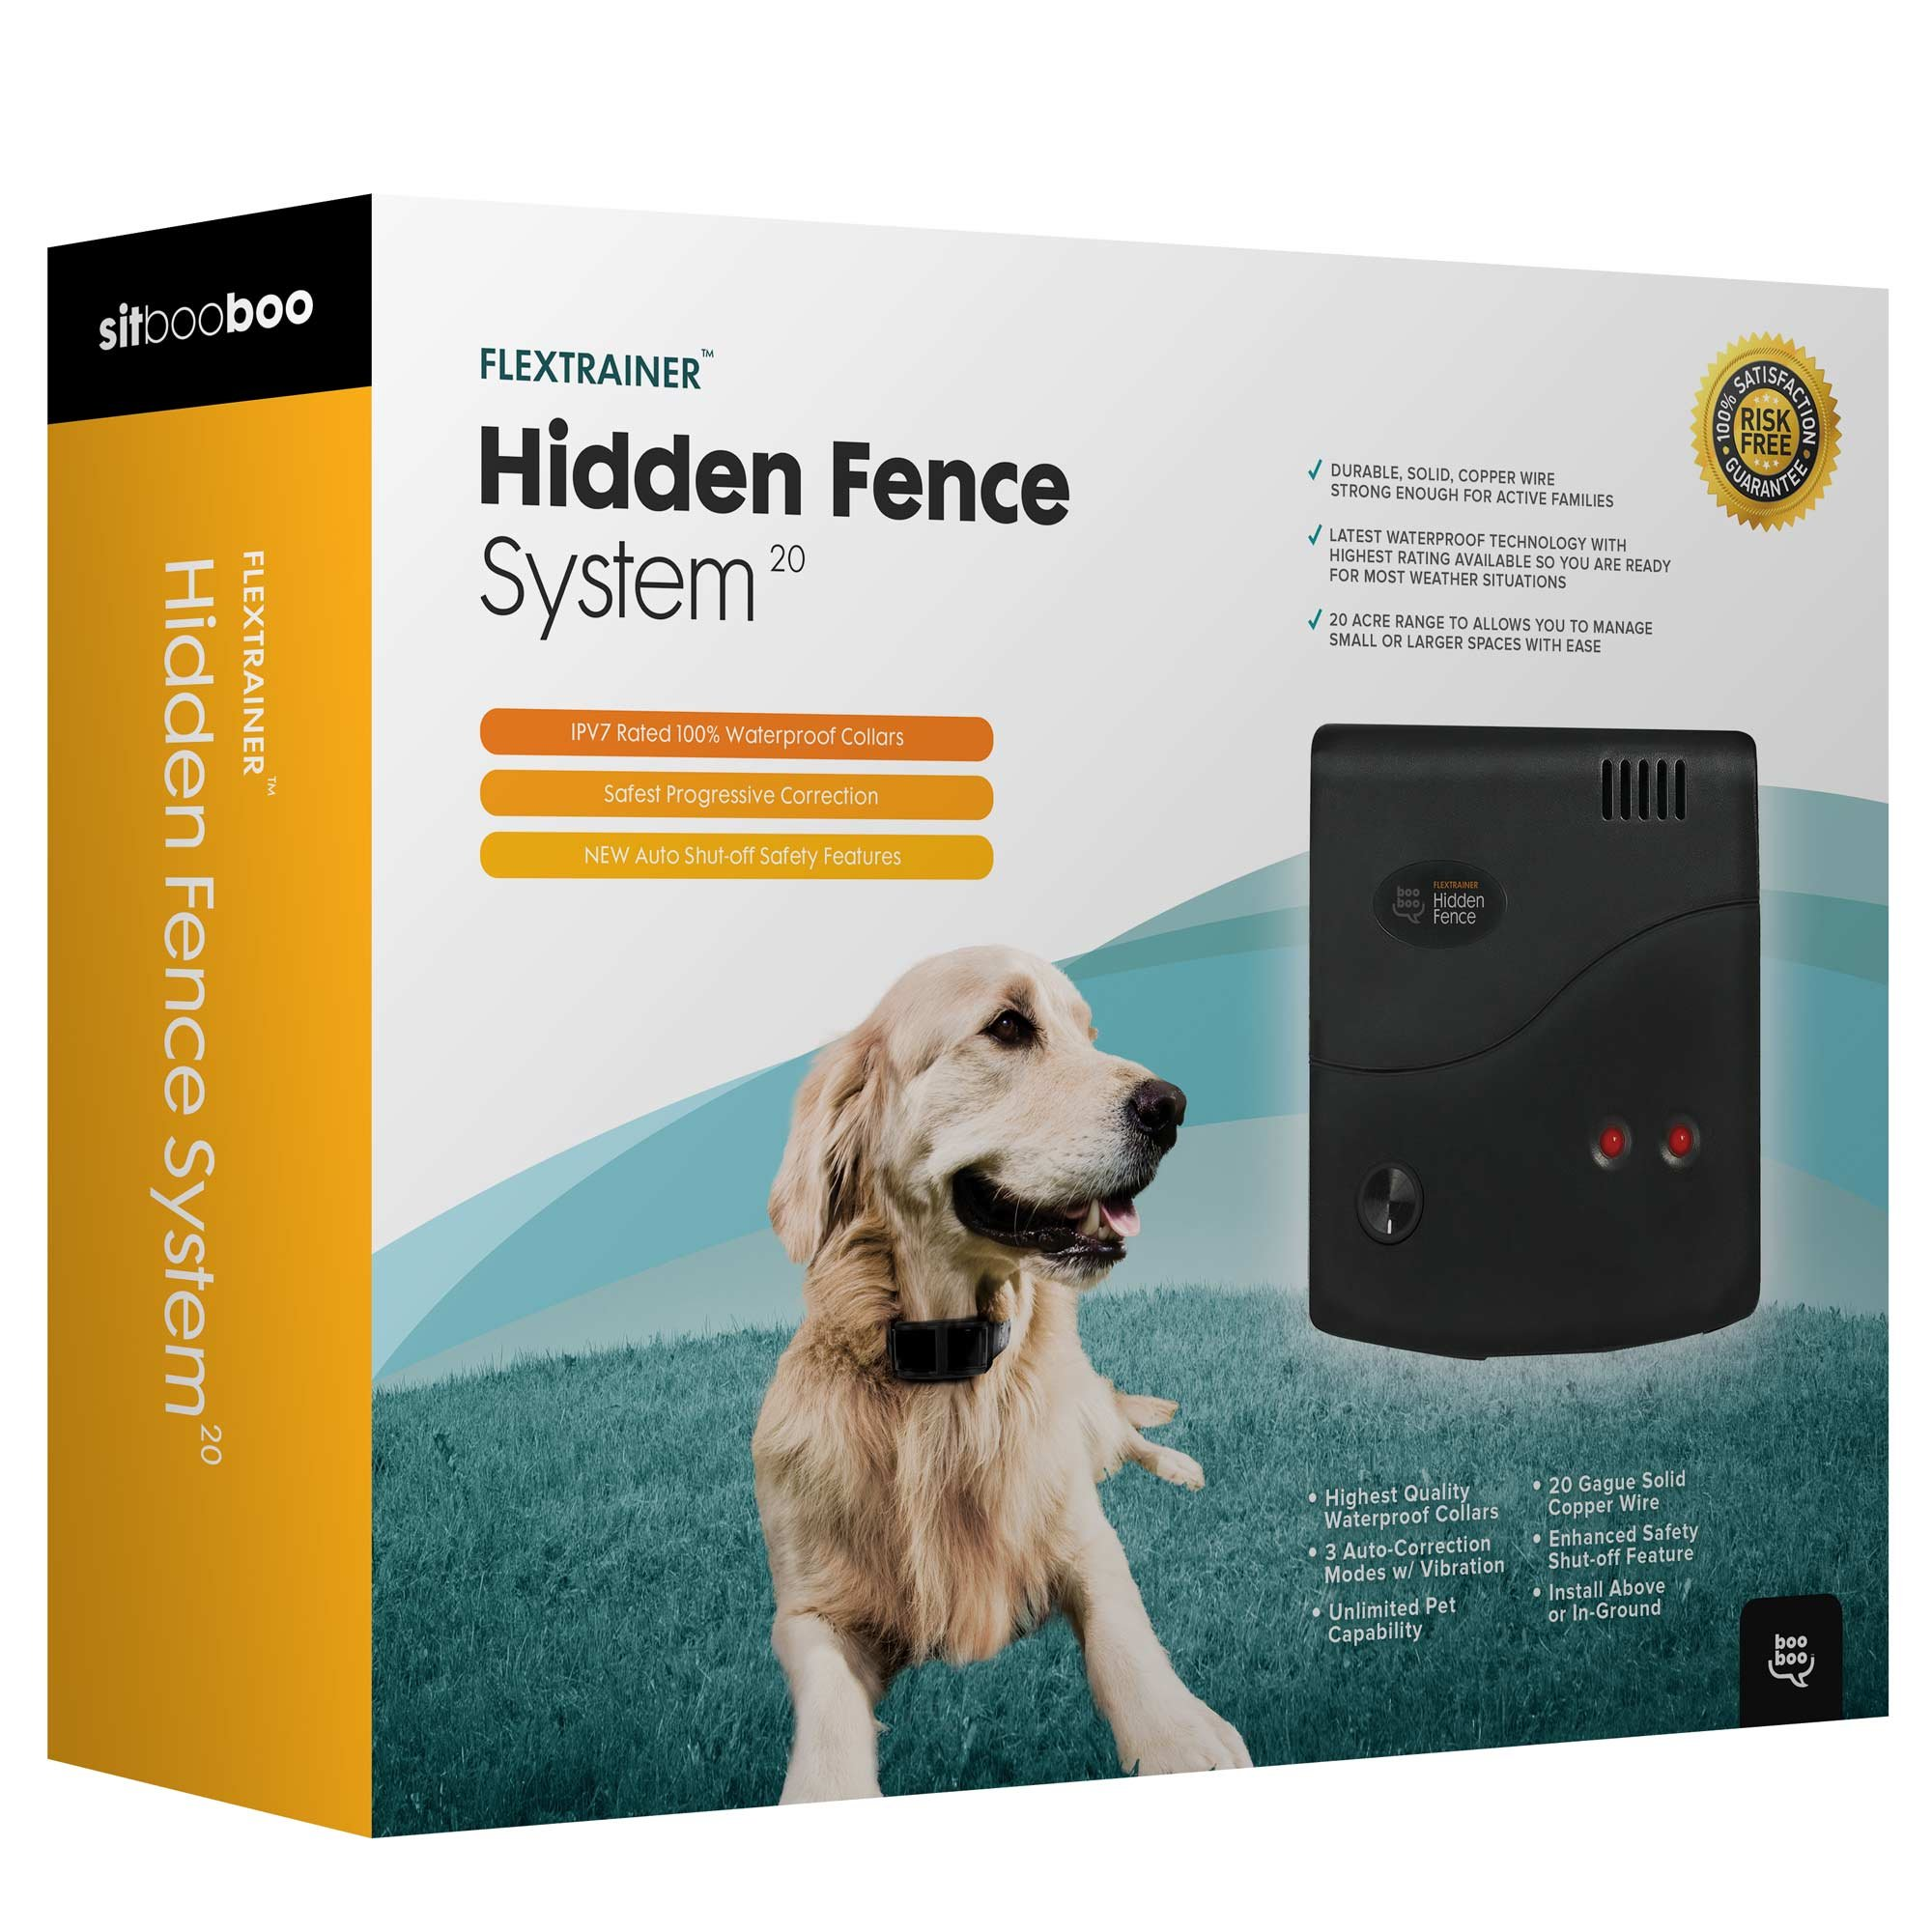 Sit Boo-Boo Advanced In-Ground Electric Dog Fence System, 20 Acre Range inc. 500ft Solid Copper Boundary Wire, 100% Waterproof & Rechargeable, Beep/Vibration/Shock, 8-100 lbs, Single Collar